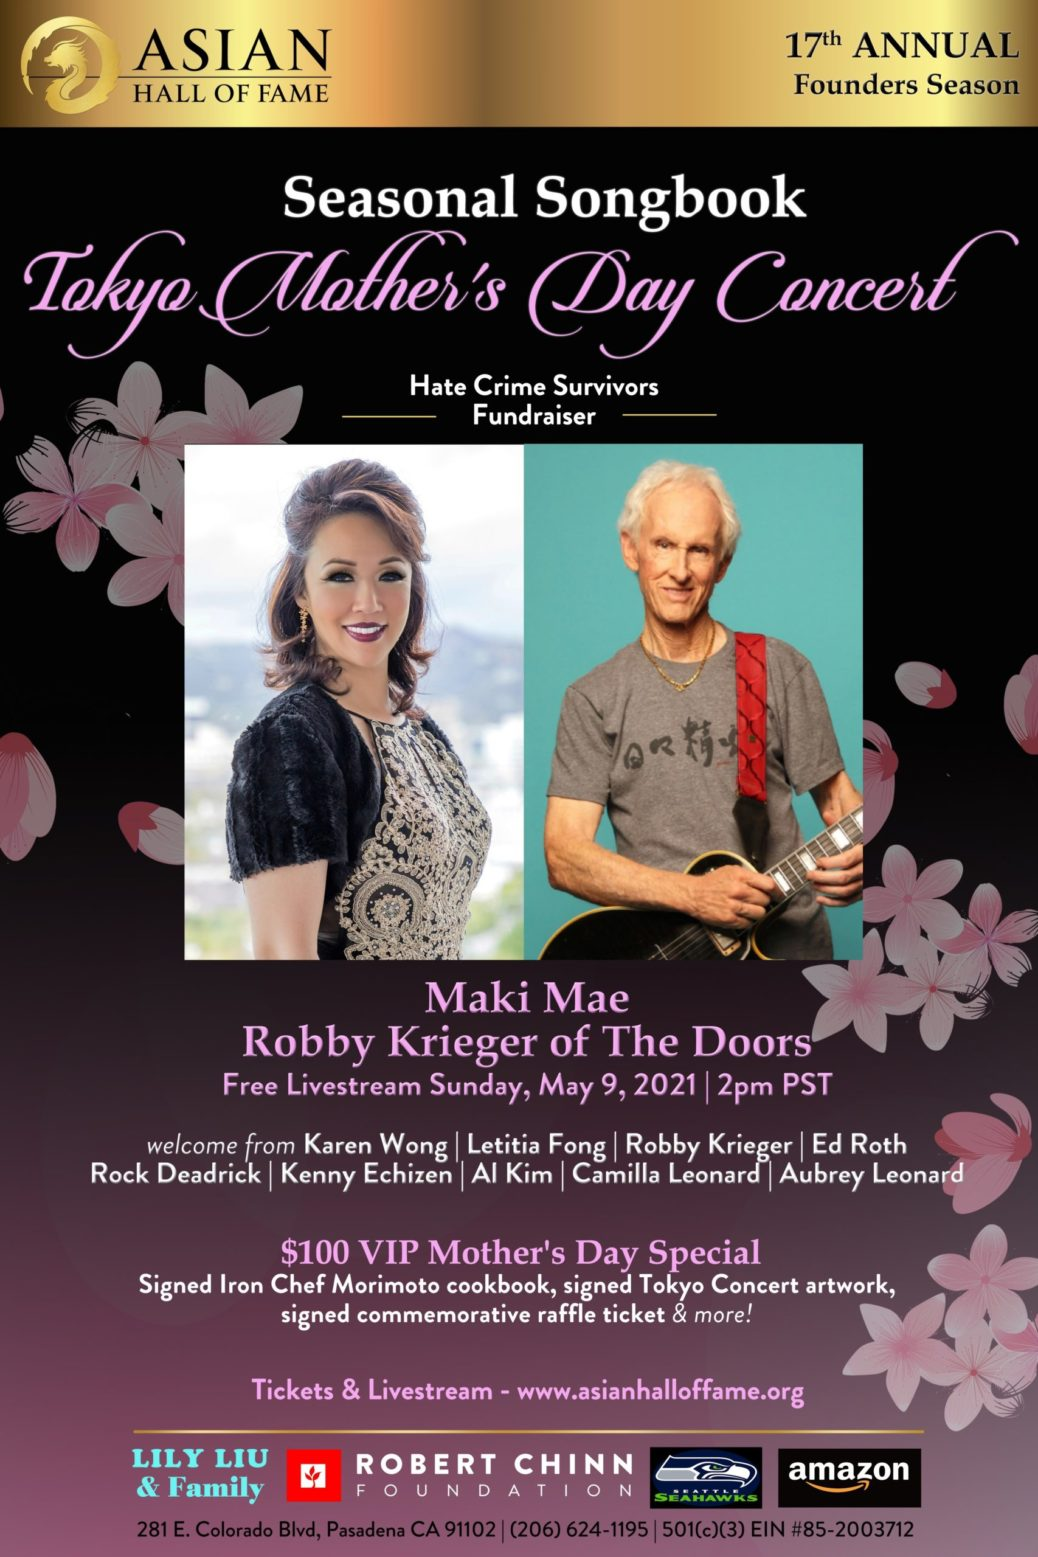 Maki Mae and Robby Krieger in promo poster smiling and all the information is listed for the concerts